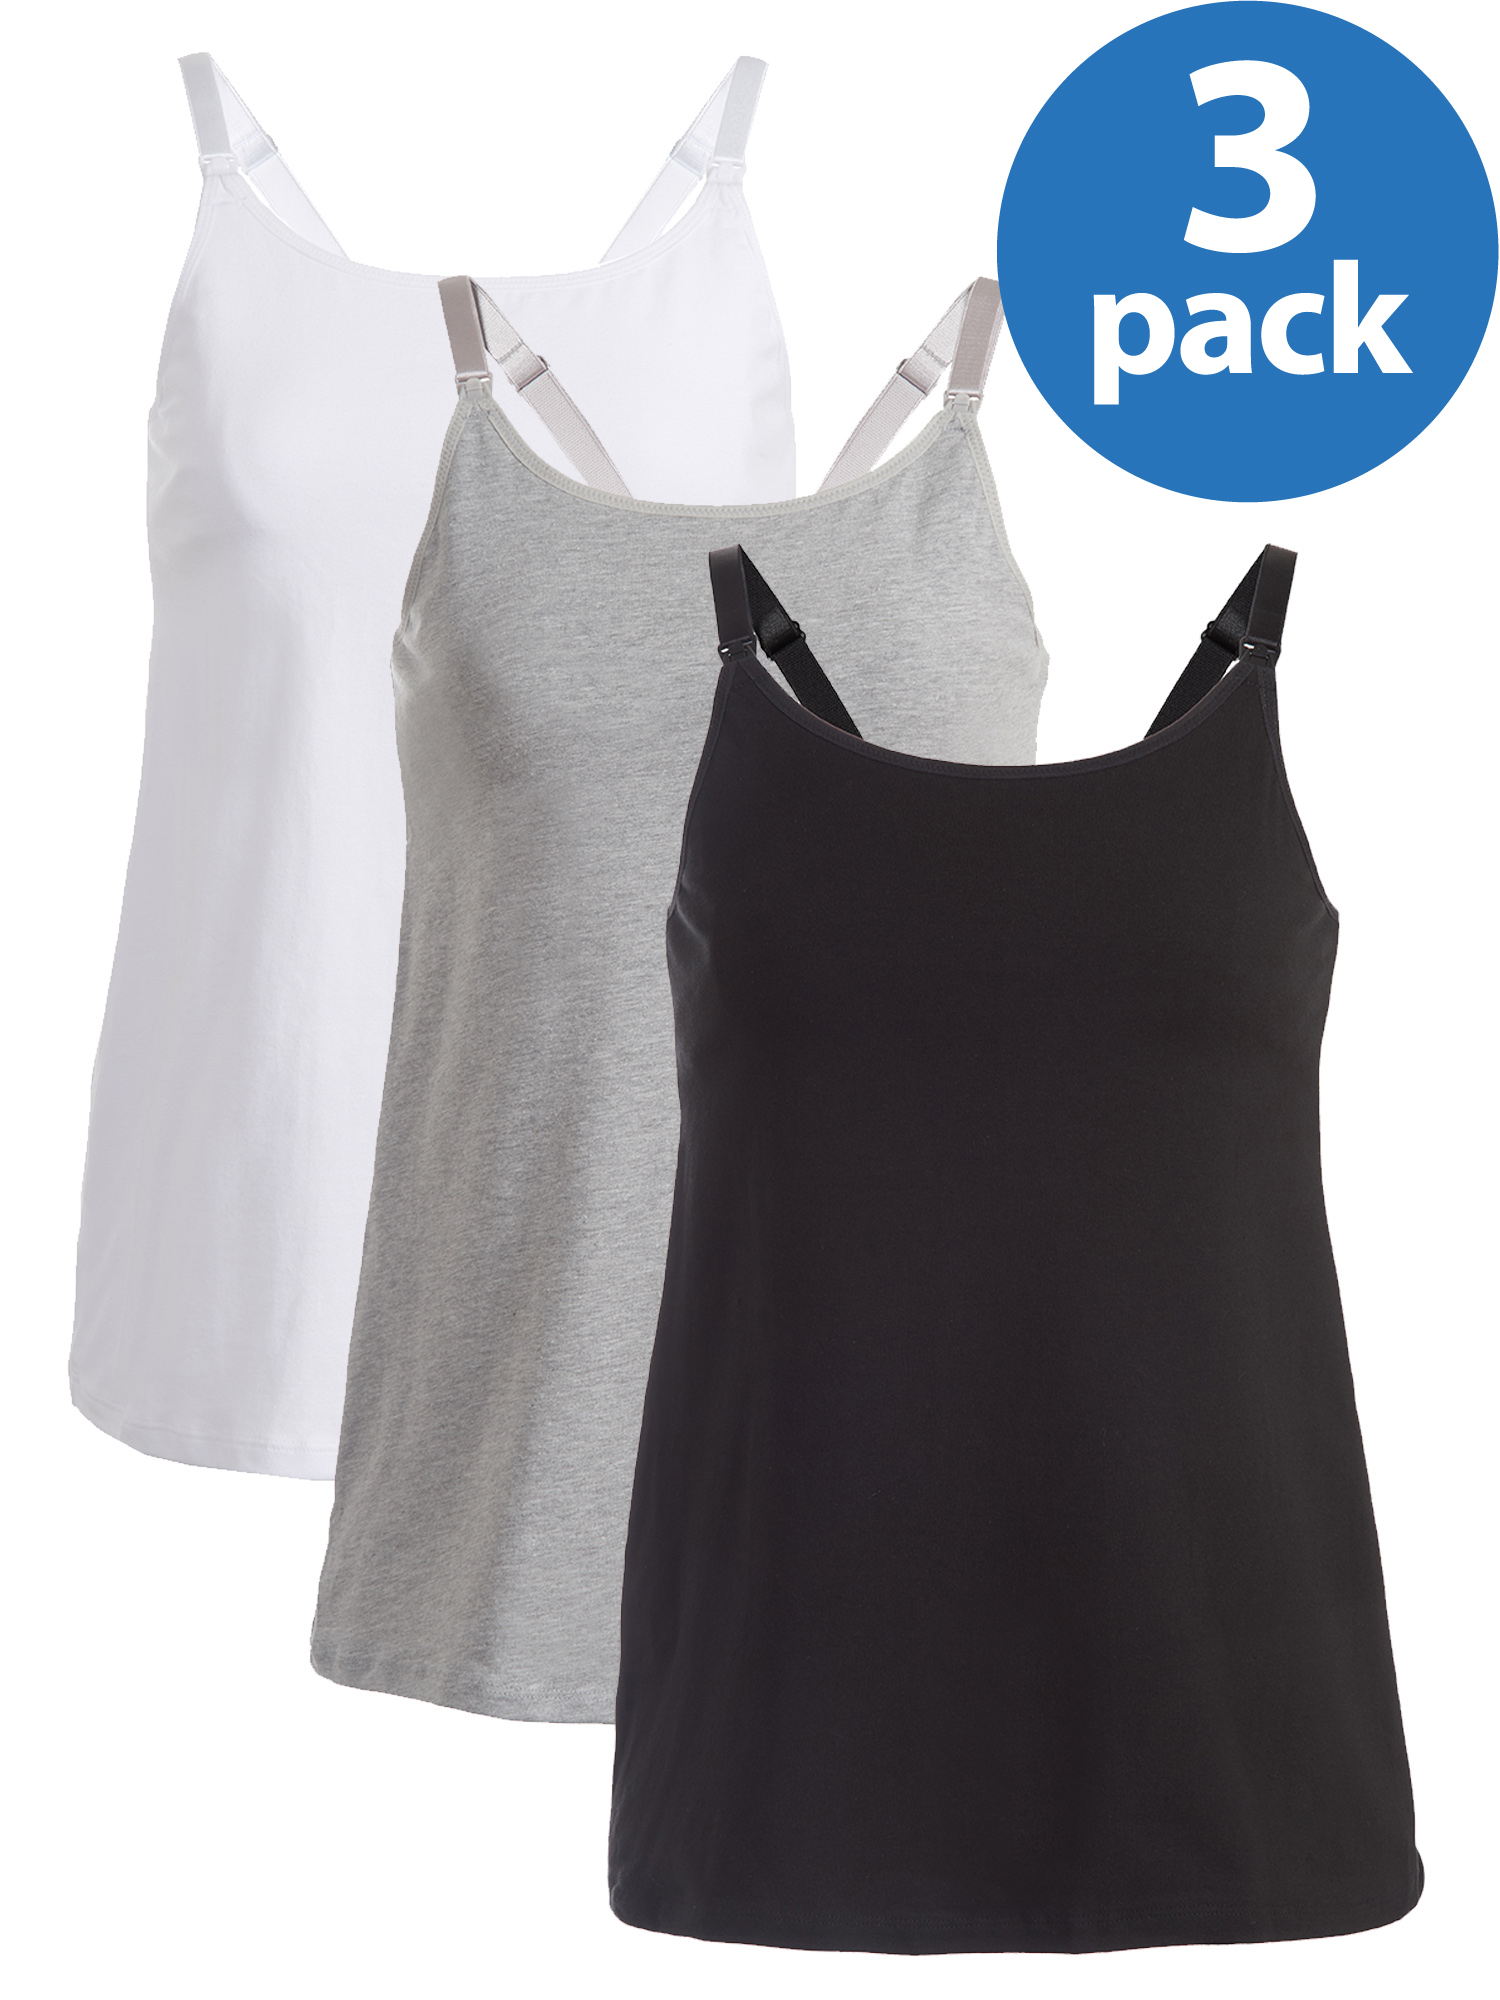 Loving Moments by Leading Lady Maternity Nursing Cami with Built-in Shelf Bra,